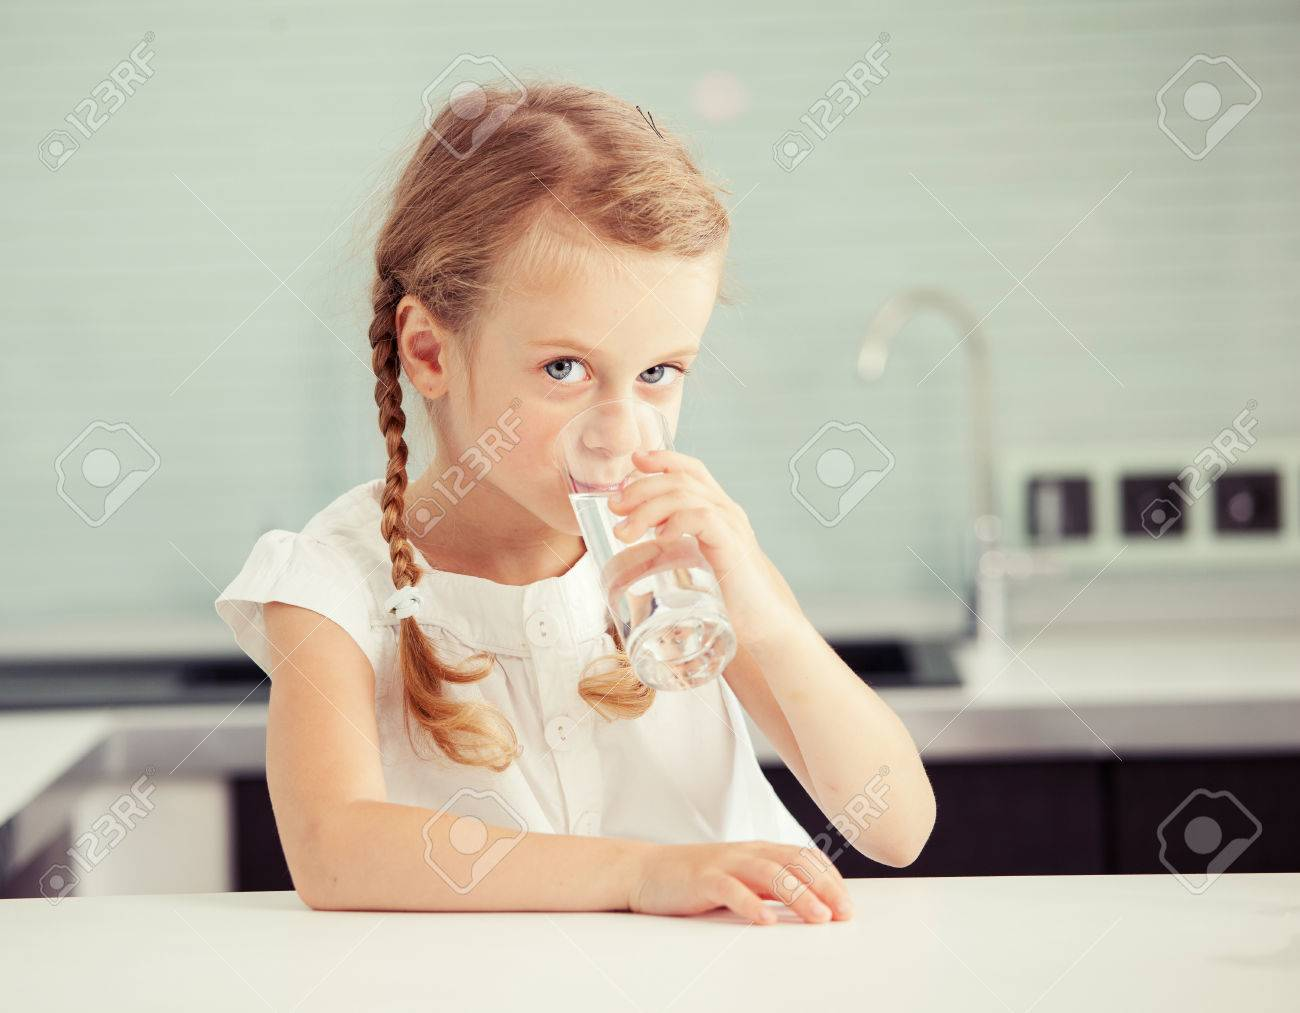 Home Drinking Water Child Drinking Water From Glass Happy Little Girl At Home In